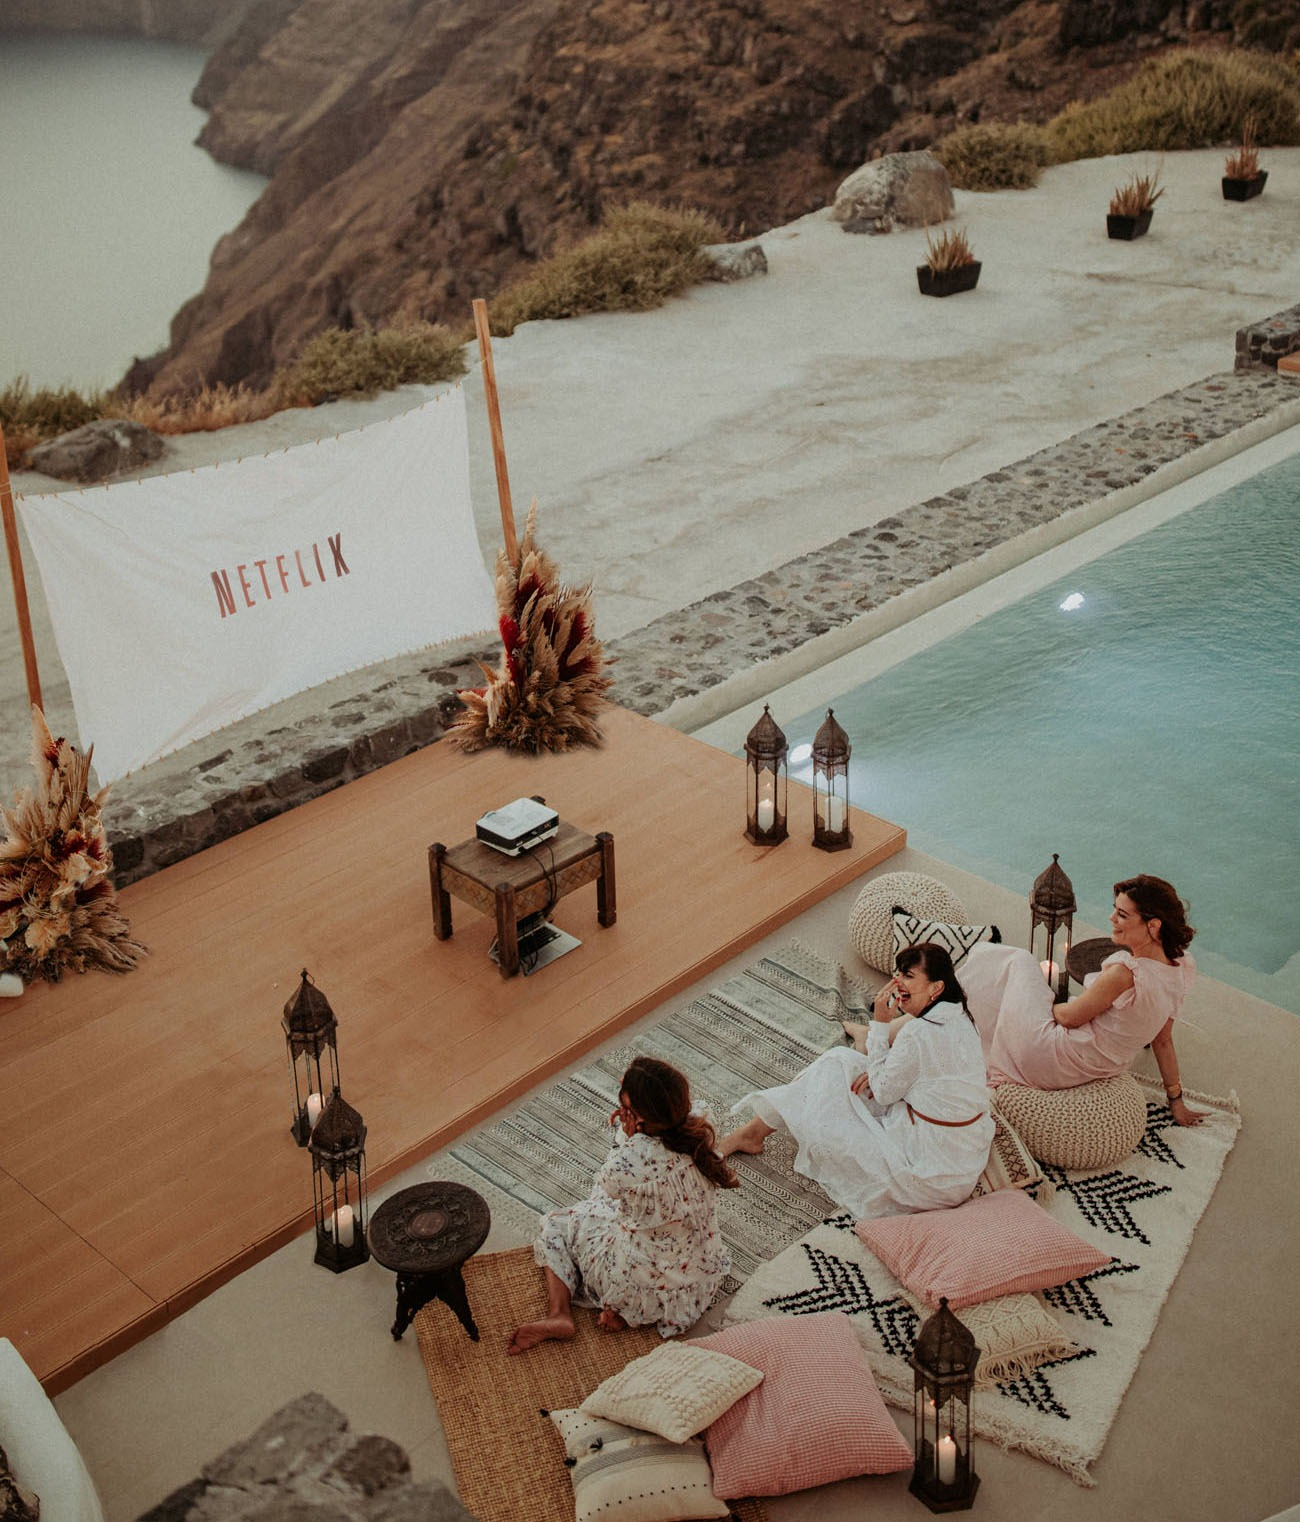 wedding shower or bachelorette in an epic location before your destination wedding ceremony